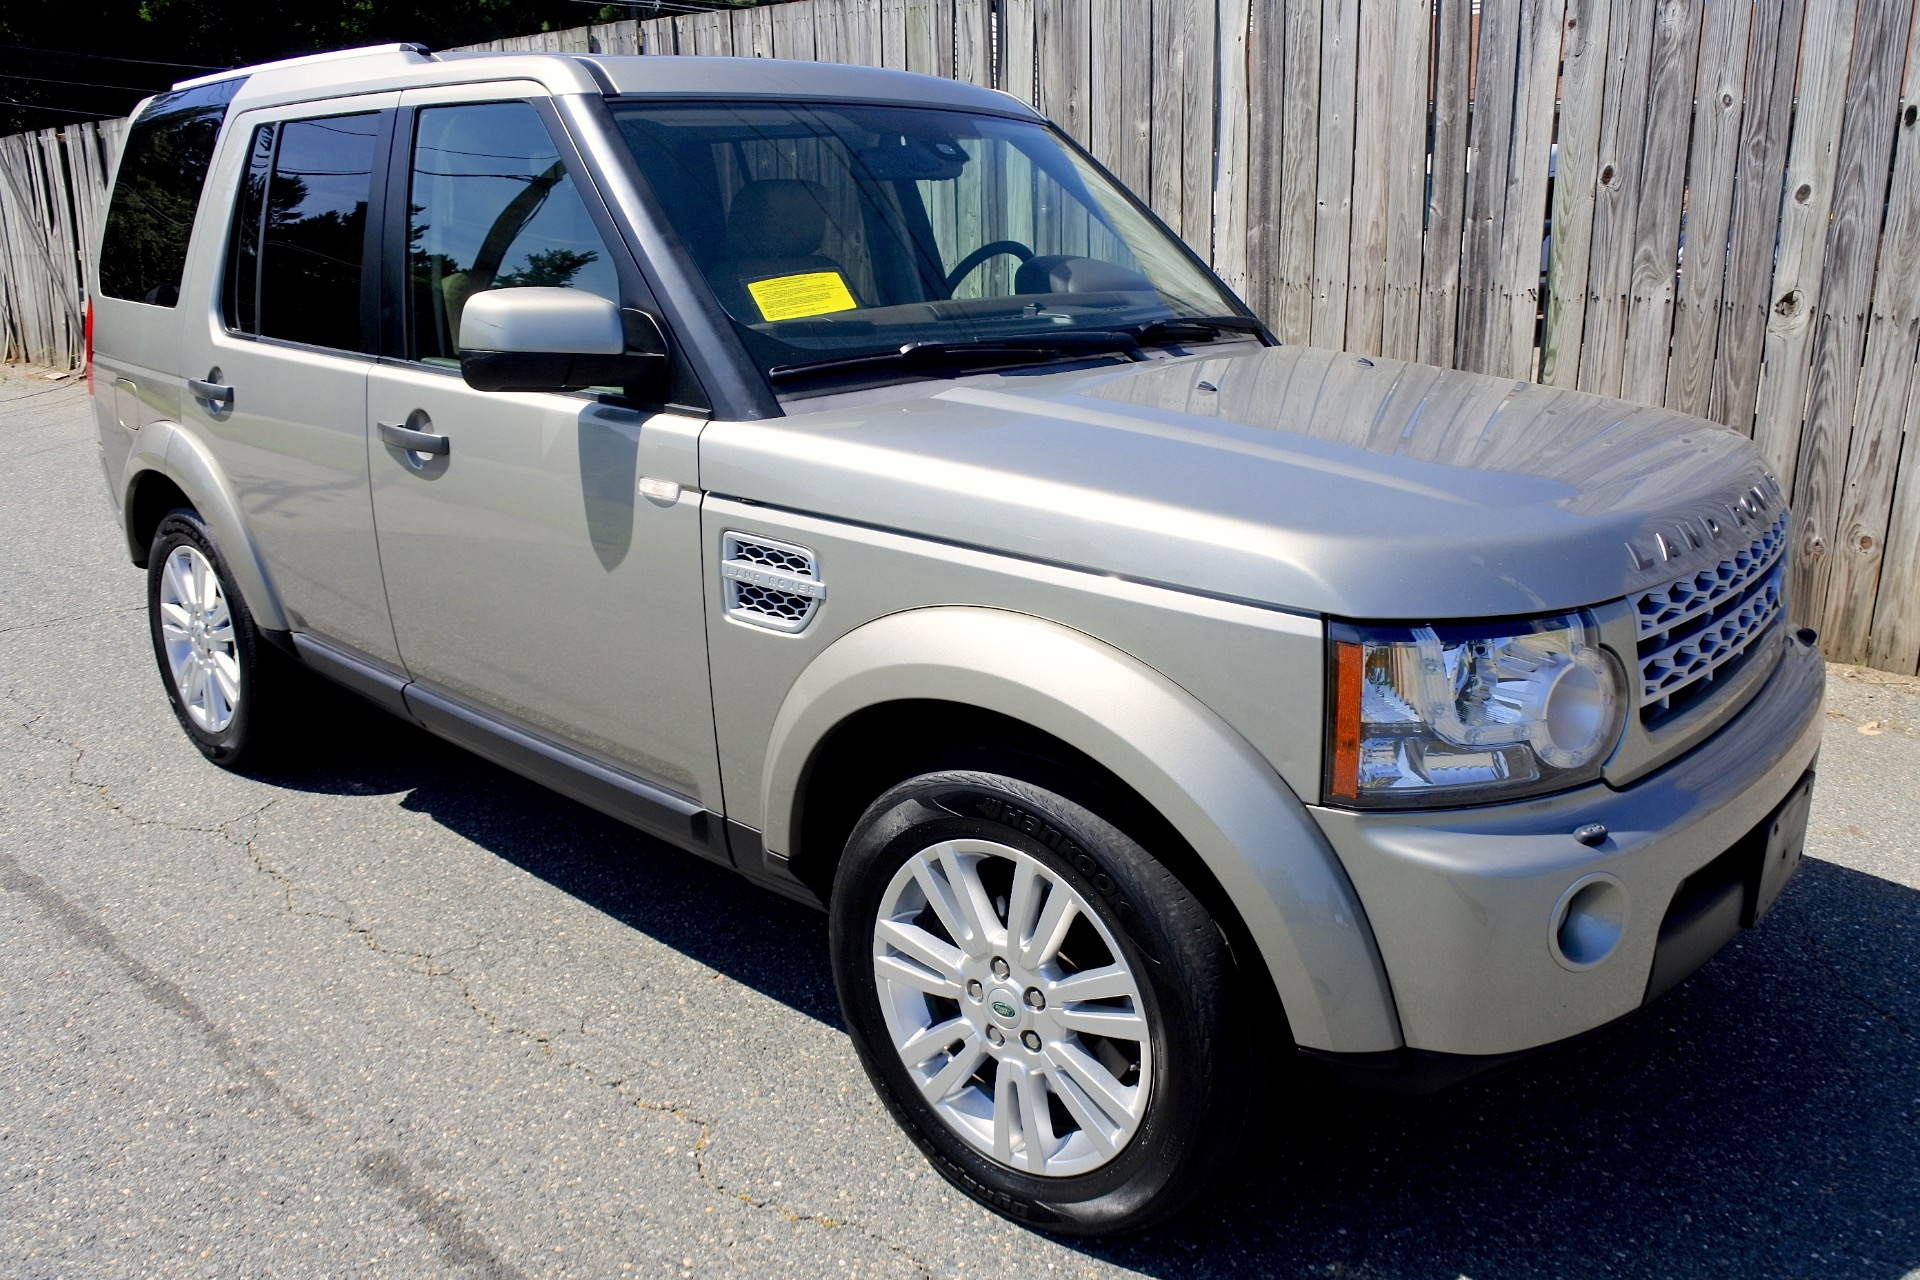 Used 2011 Land Rover Lr4 4WD 4dr V8 HSE Used 2011 Land Rover Lr4 4WD 4dr V8 HSE for sale  at Metro West Motorcars LLC in Shrewsbury MA 7